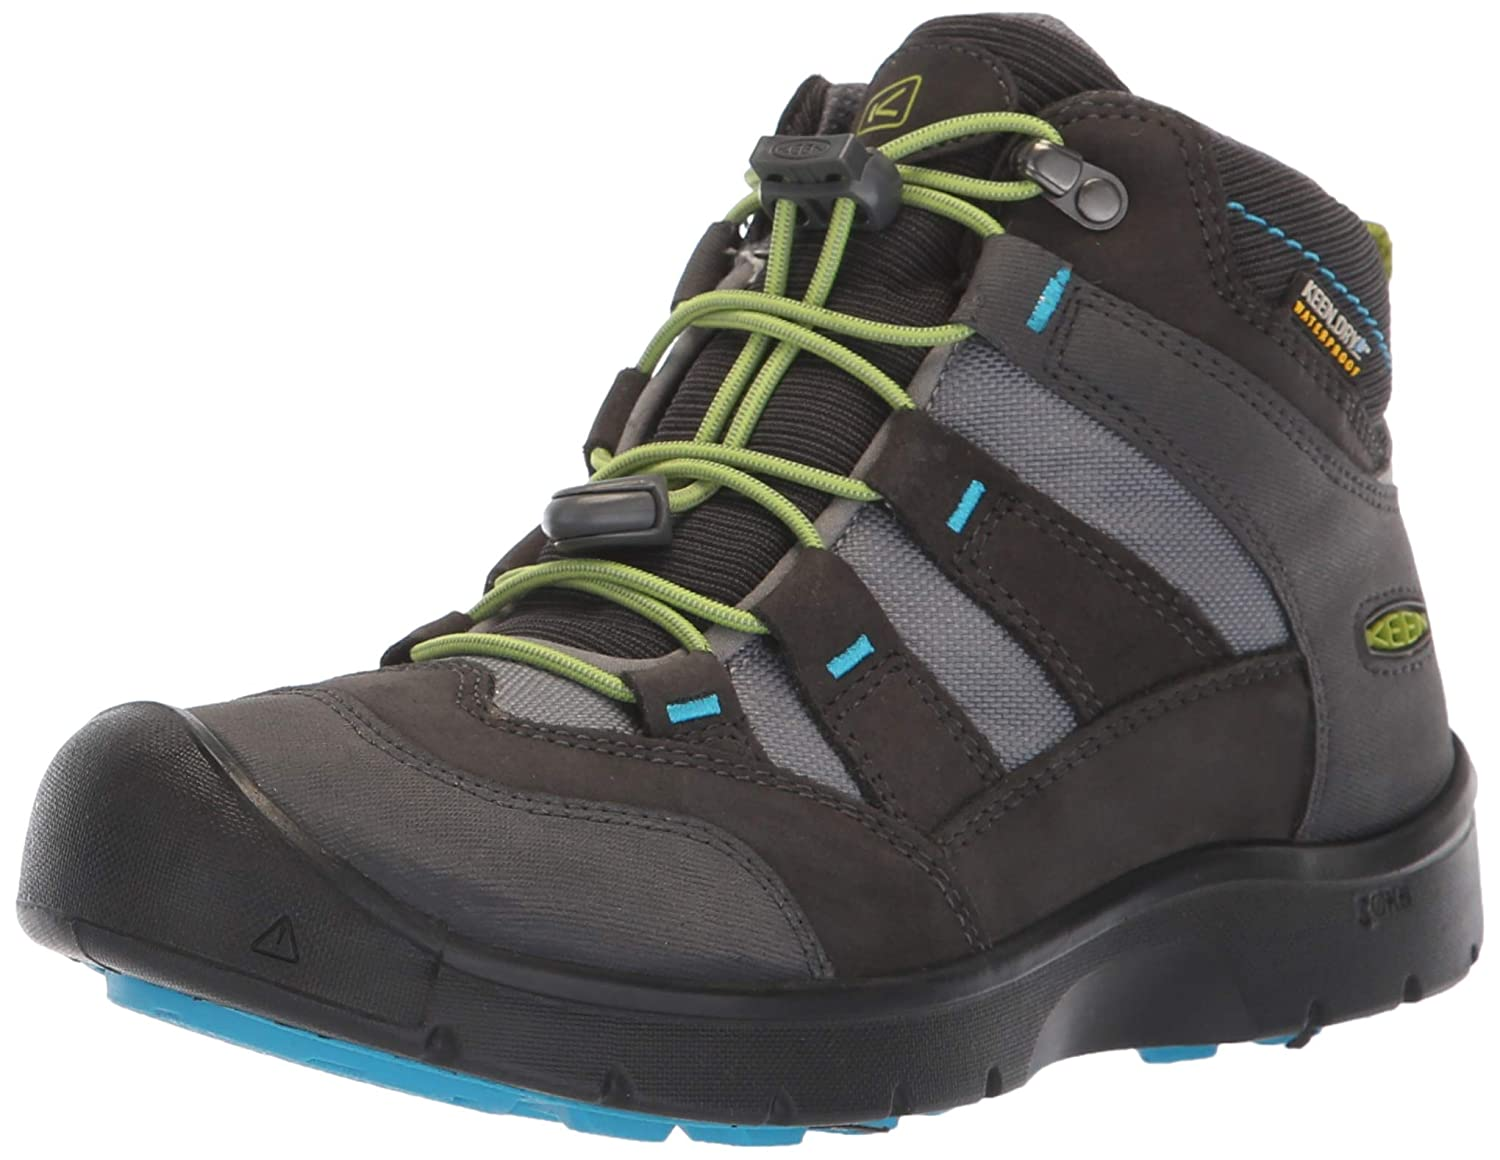 KEEN Hikesport Mid Waterproof Junior US Hiking Chaussure - SS18 US Junior 8 | EU 24|Magnet/Greenery db990c